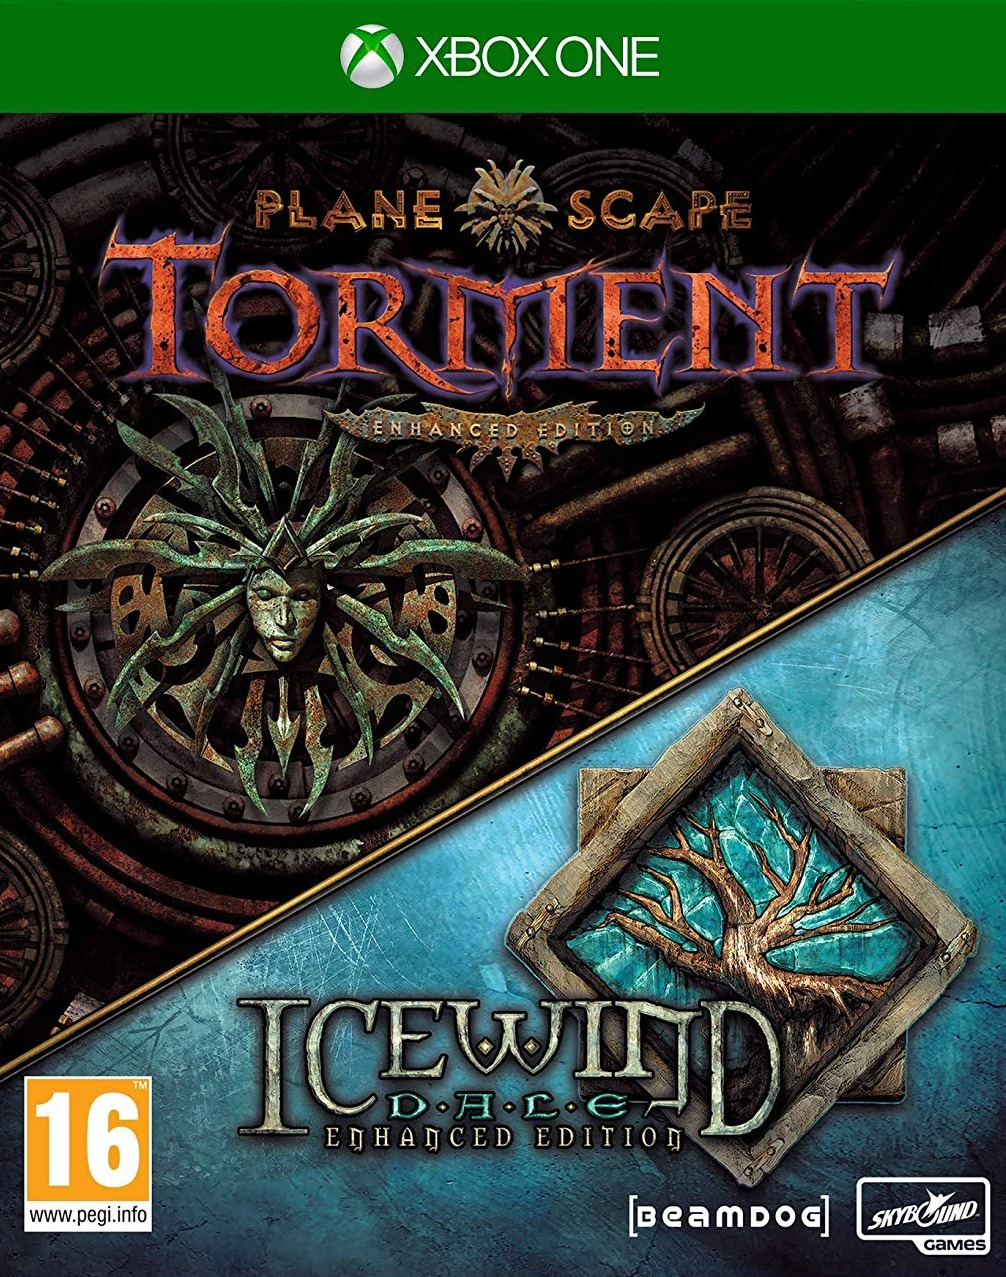 Planescape: Torment & Icewind Dale Enhanced Edition (XONE)